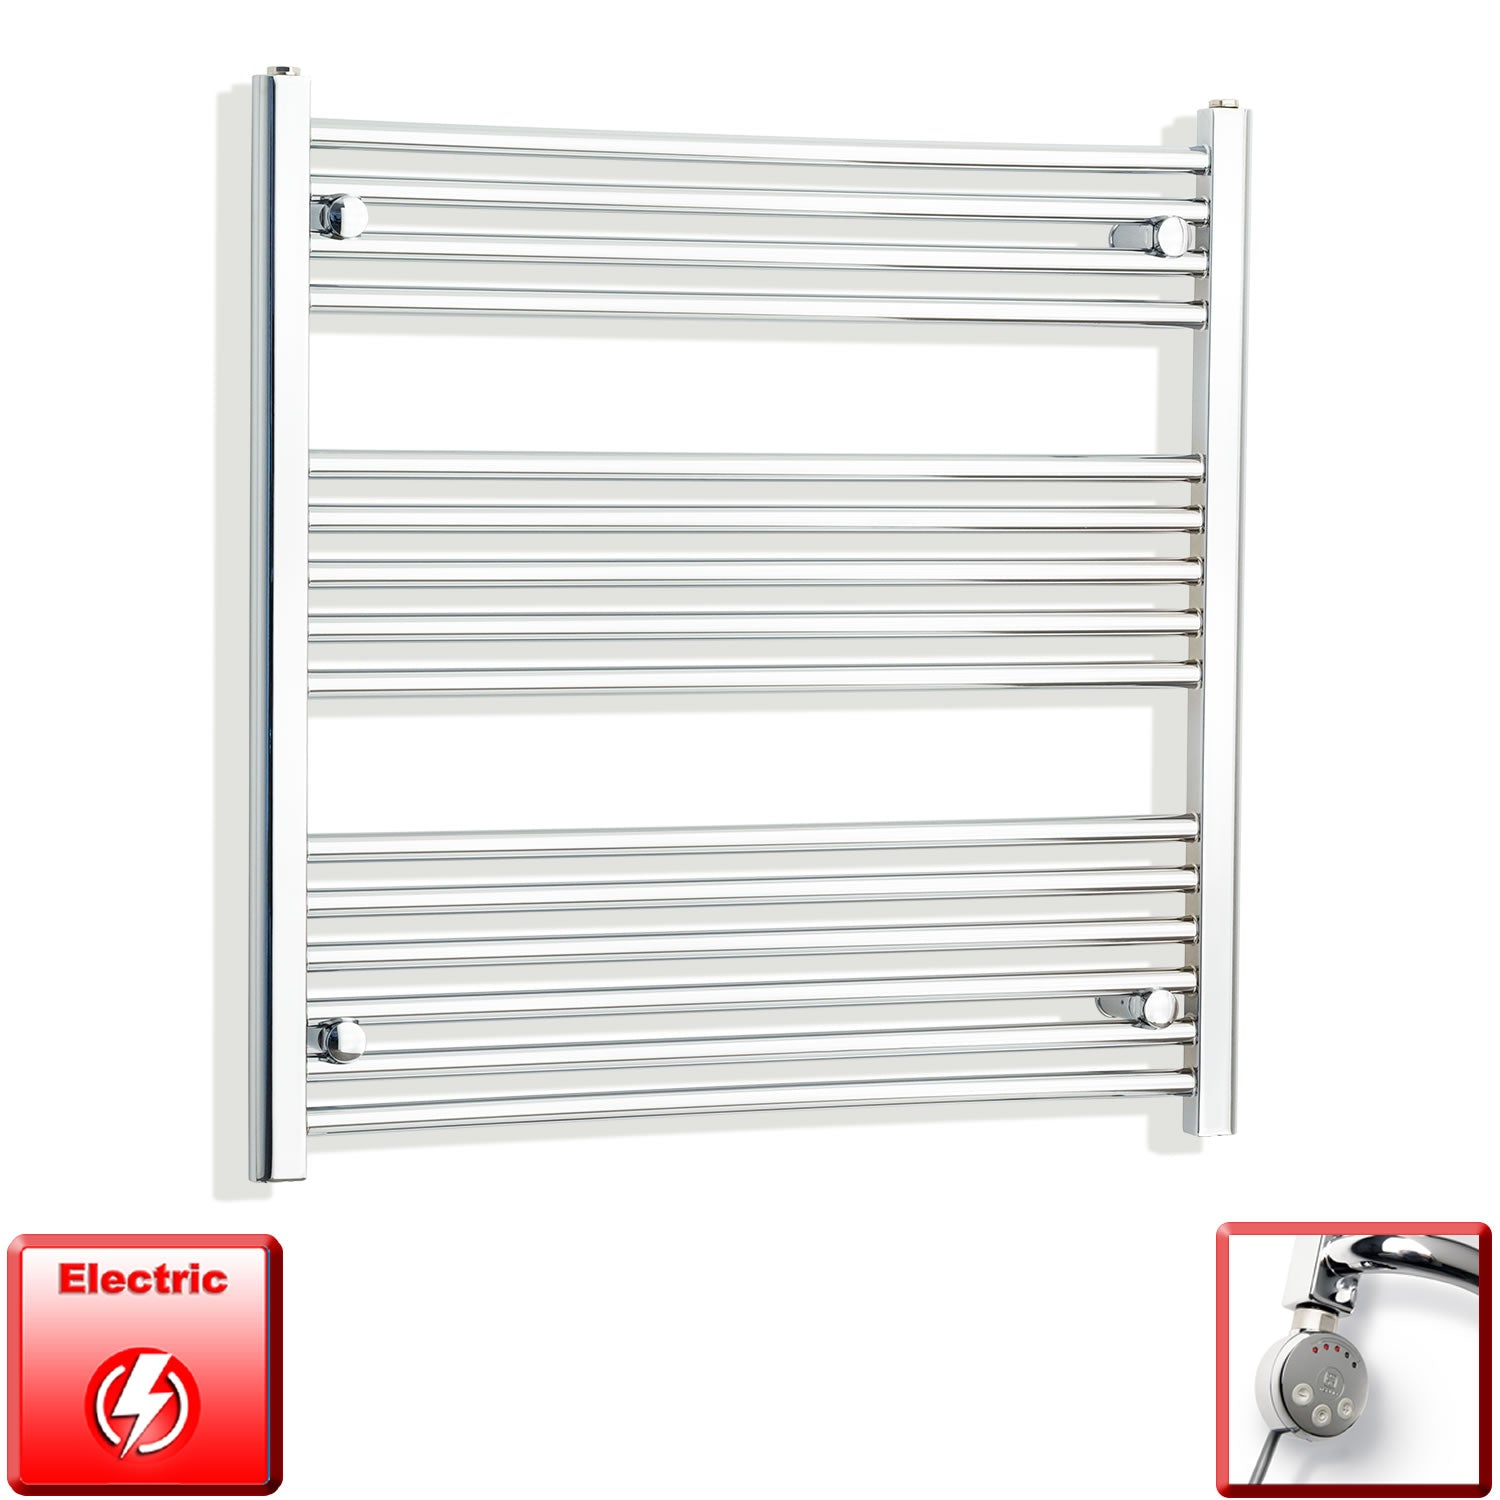 800mm Wide 800mm High Pre-Filled Chrome Electric Towel Rail Radiator With Thermostatic MEG Element